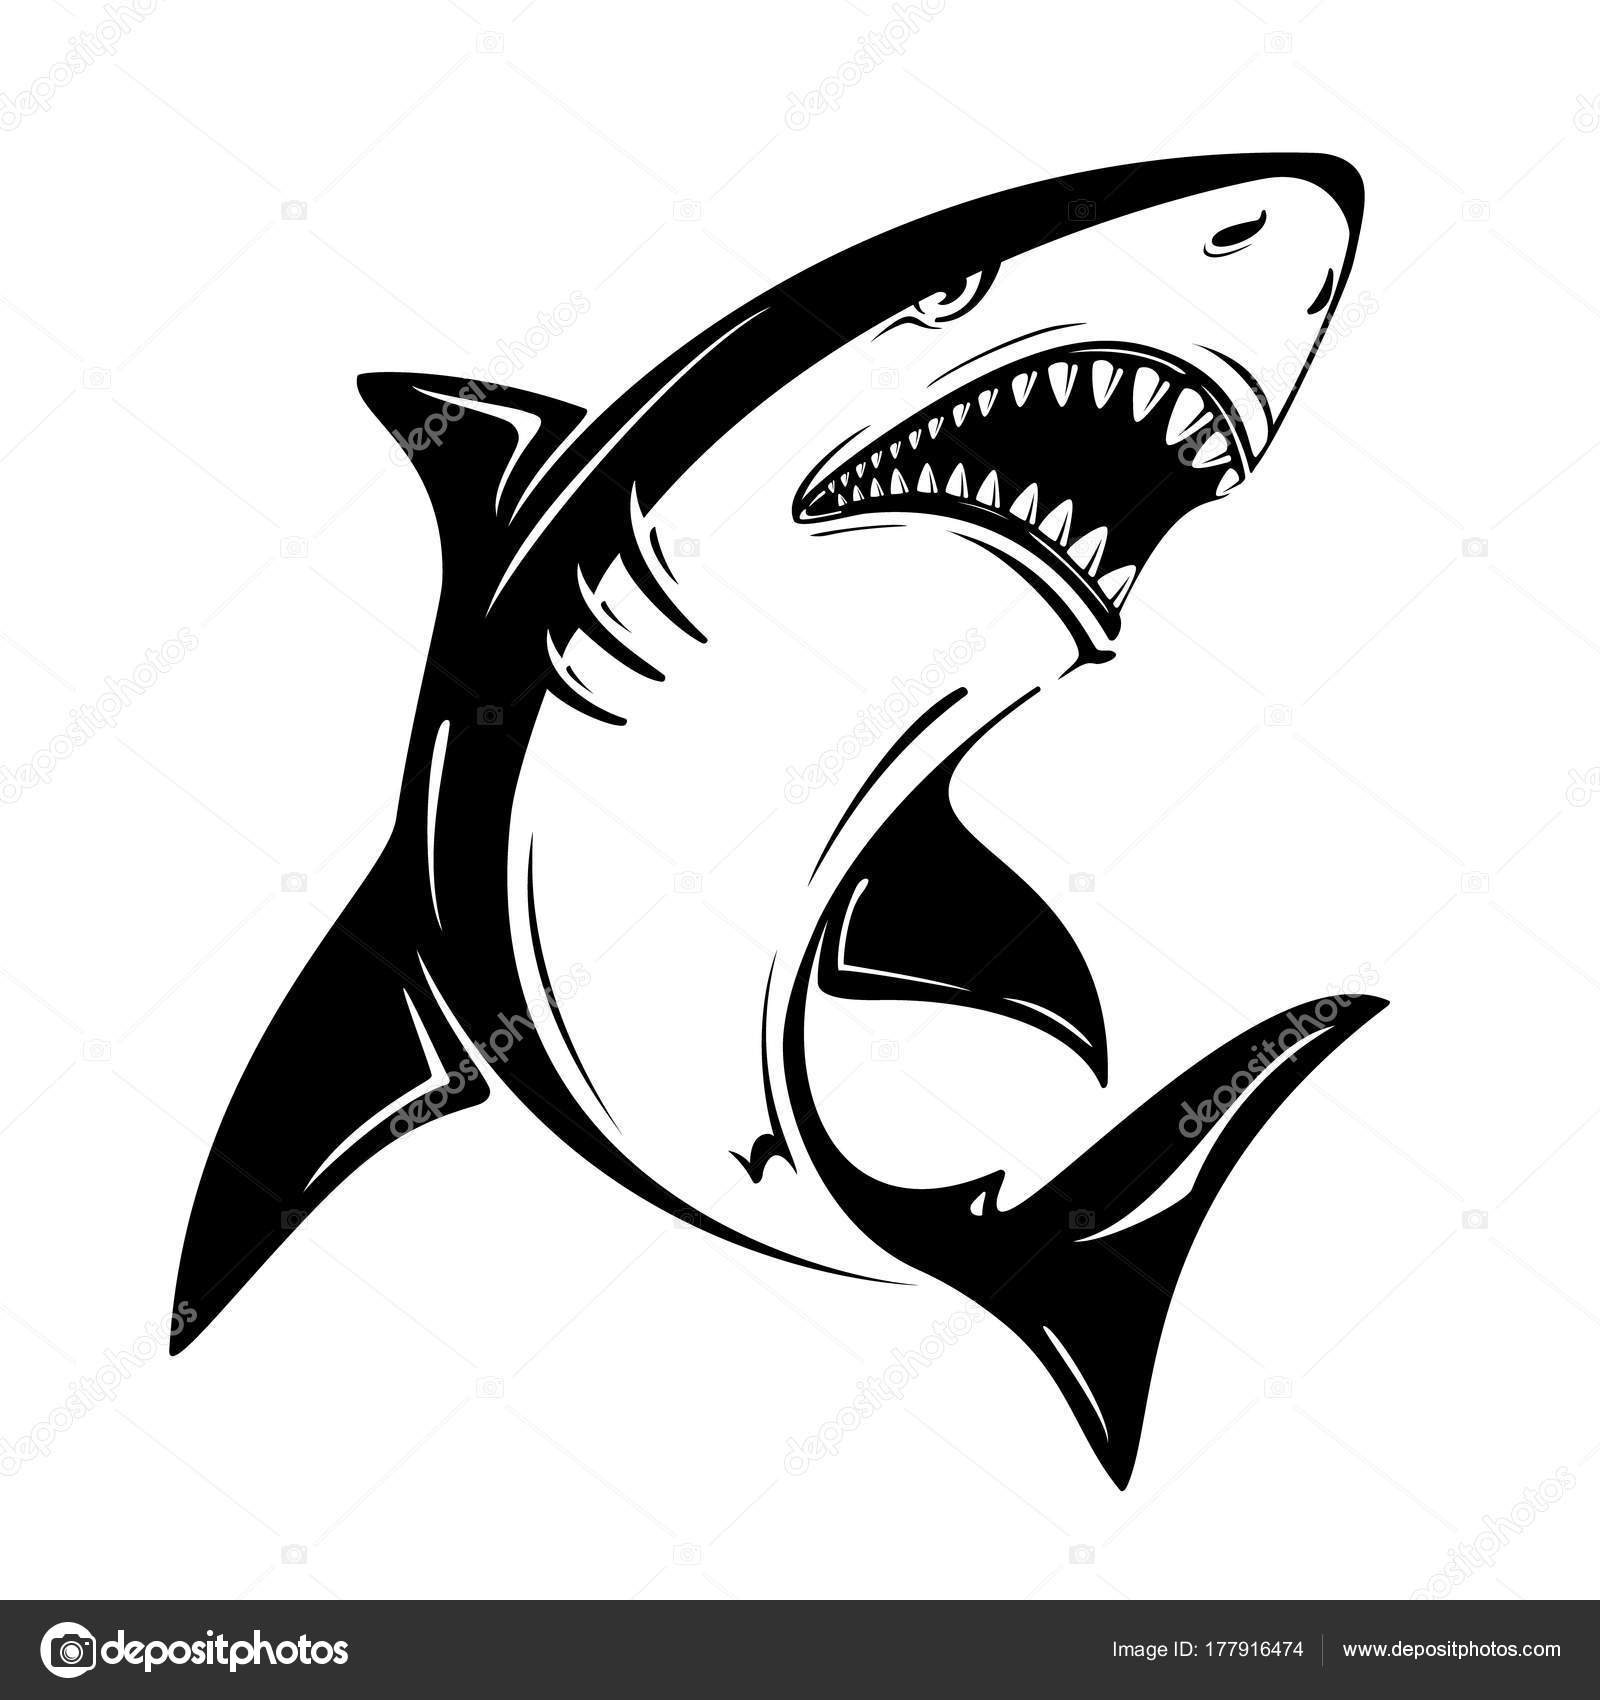 Angry Black Shark Vector Illustration Isolated On White